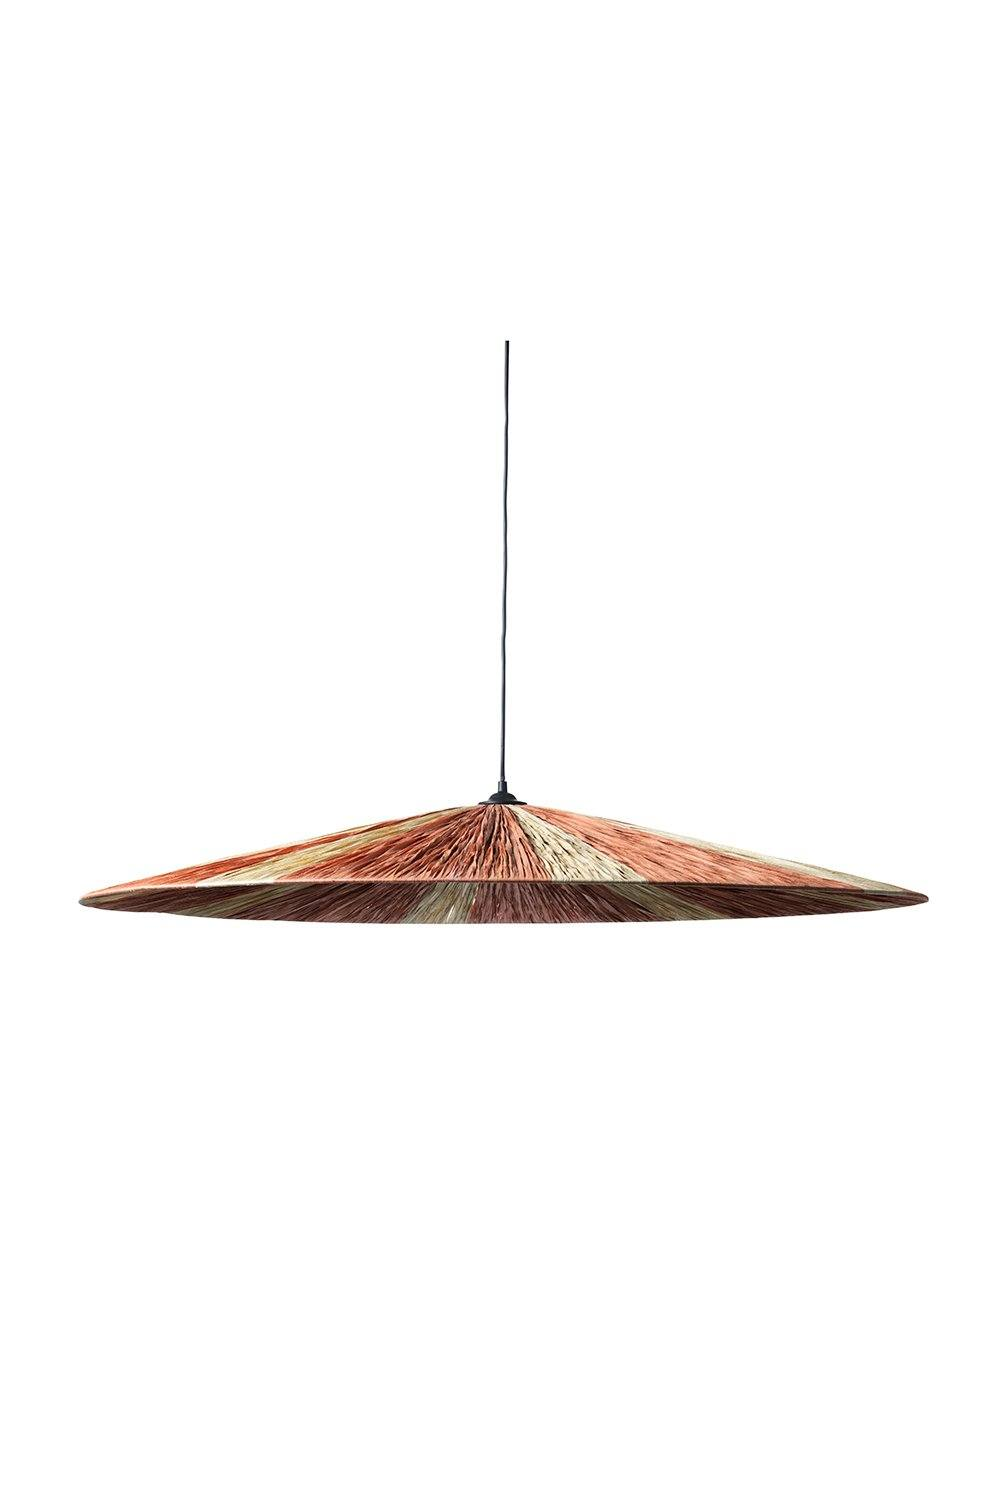 Large Parasol Ceiling Pendant Light - Blush and Natural Homewares Jore Copenhagen